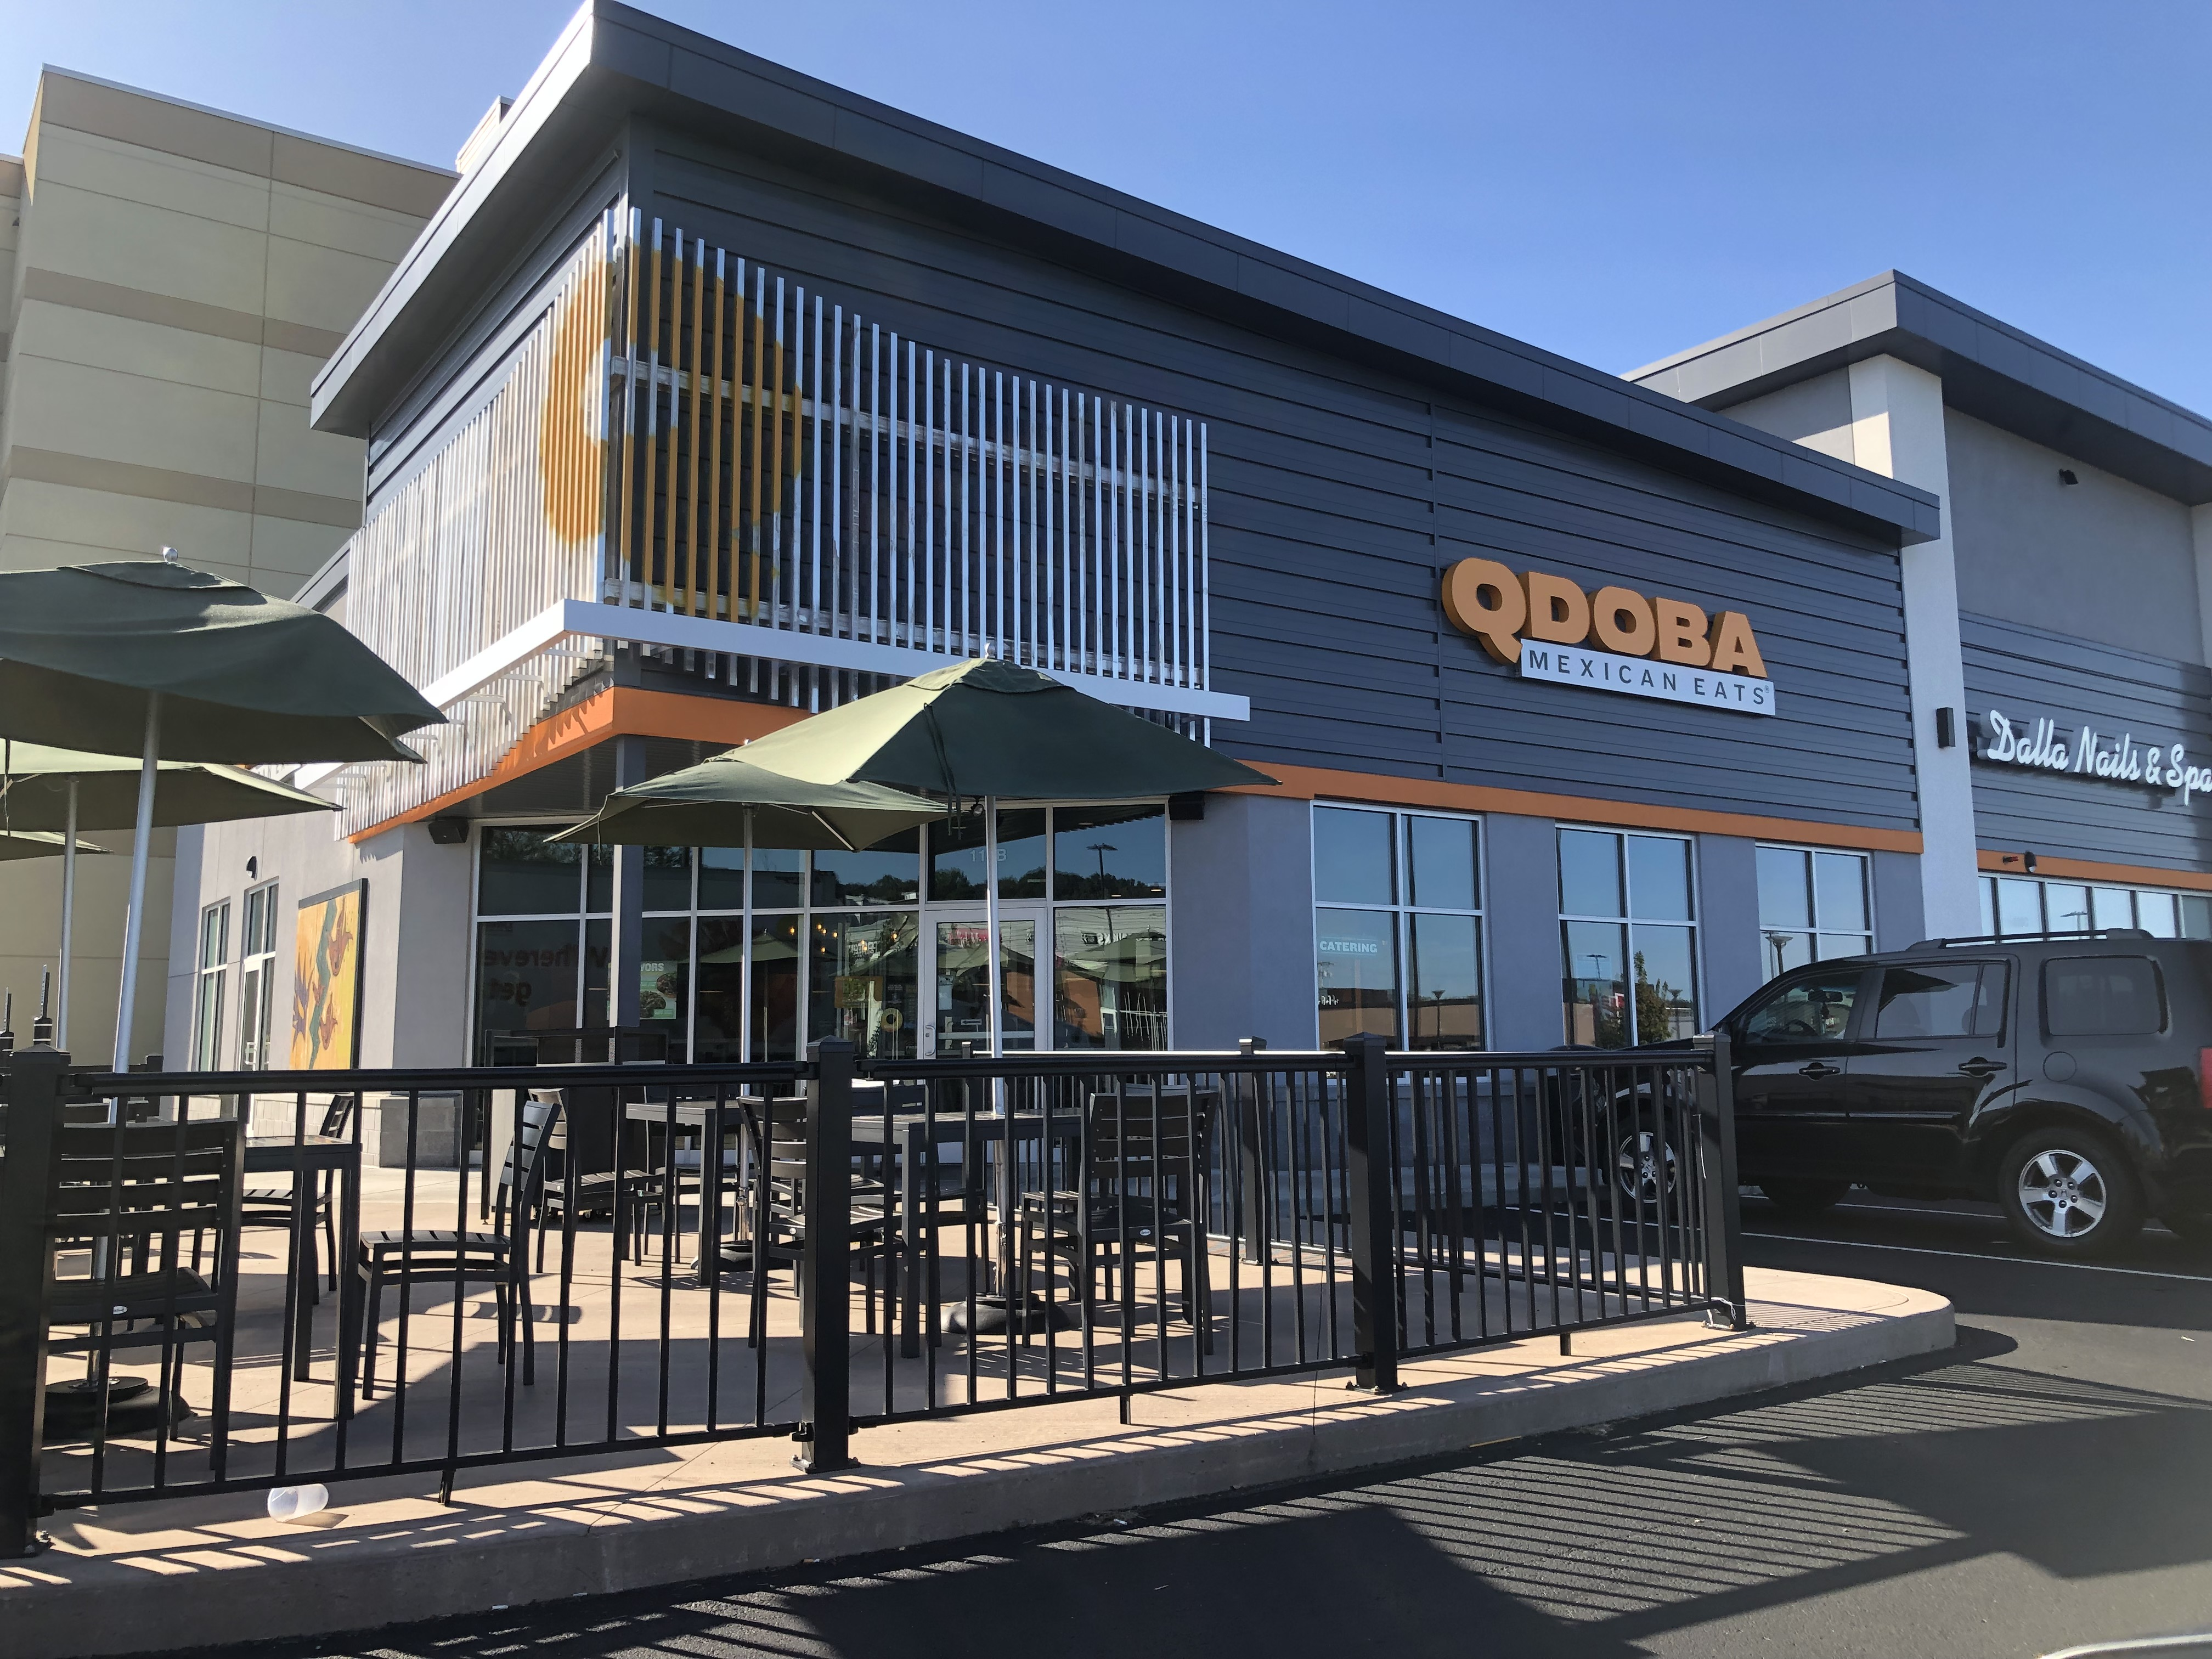 Marlborough MA Qdoba, Apex Center